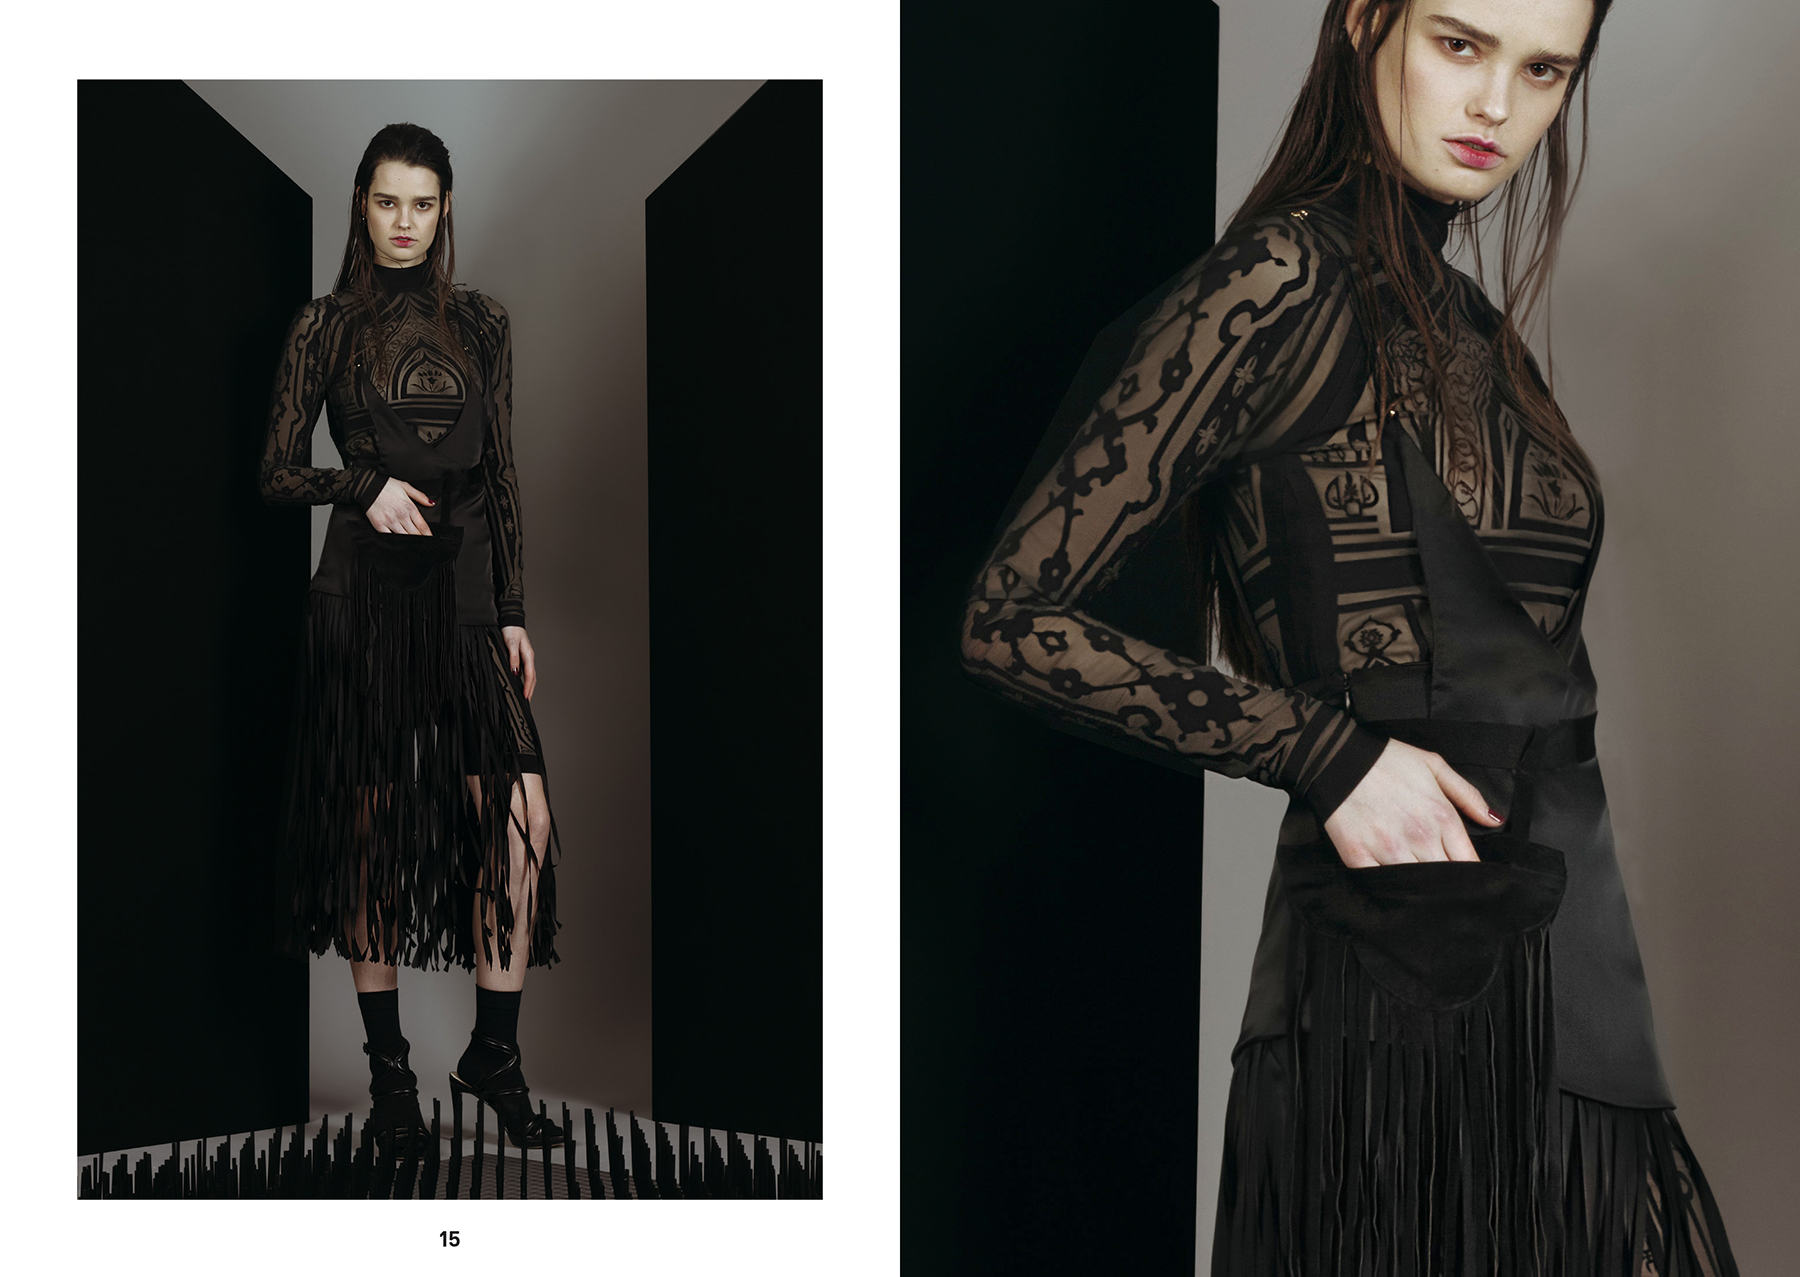 aw15_lookbook_digital_HIRES-9